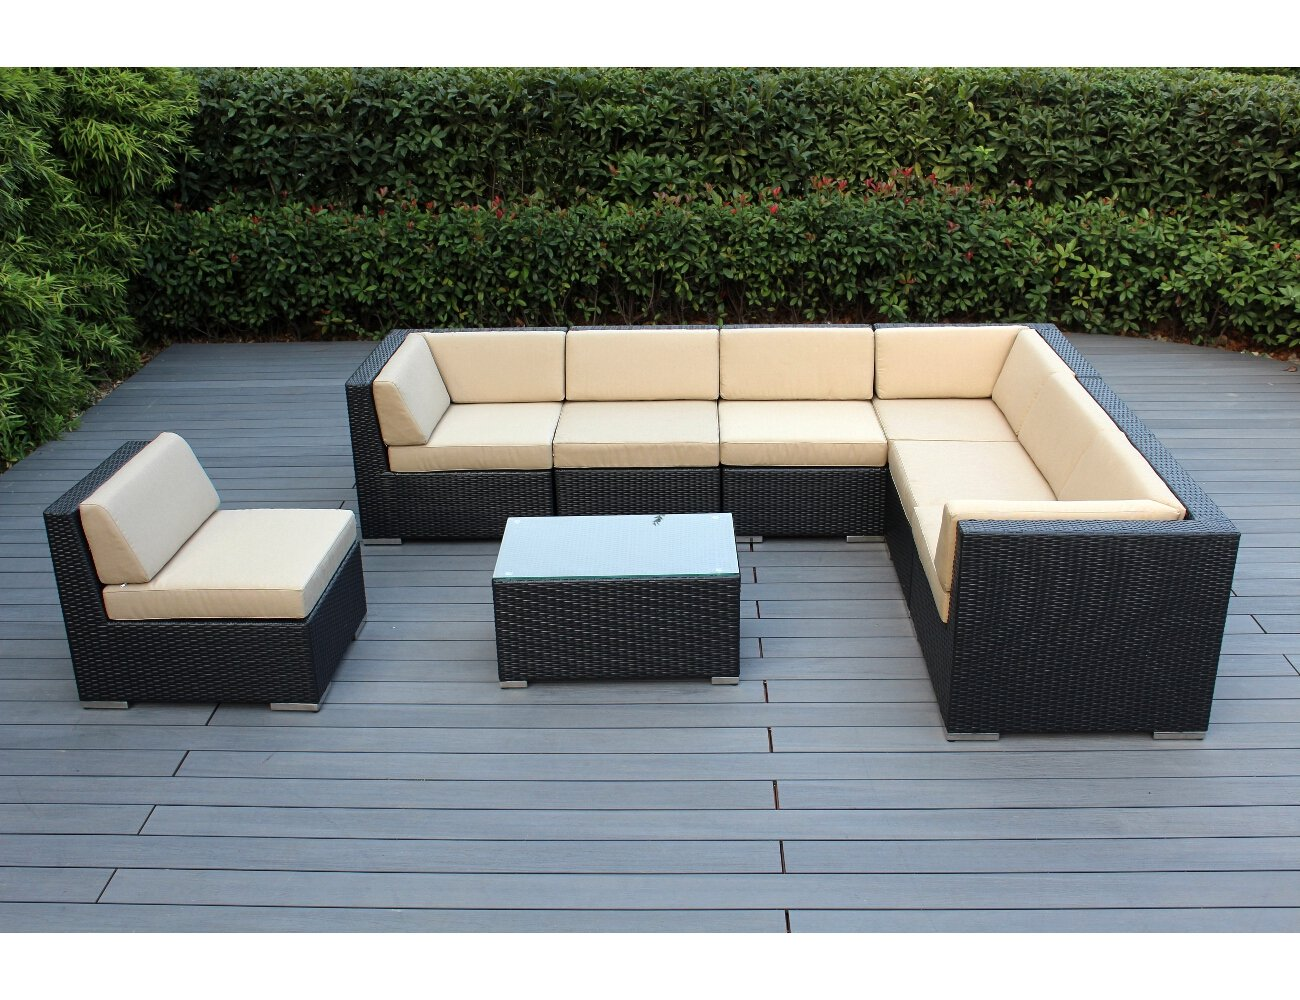 Amazon.com: Ohana 8 Piece Outdoor Wicker Patio Furniture Sectional  Conversation Set With Weather Resistant Cushions, Beige (PN0804): Garden U0026  Outdoor